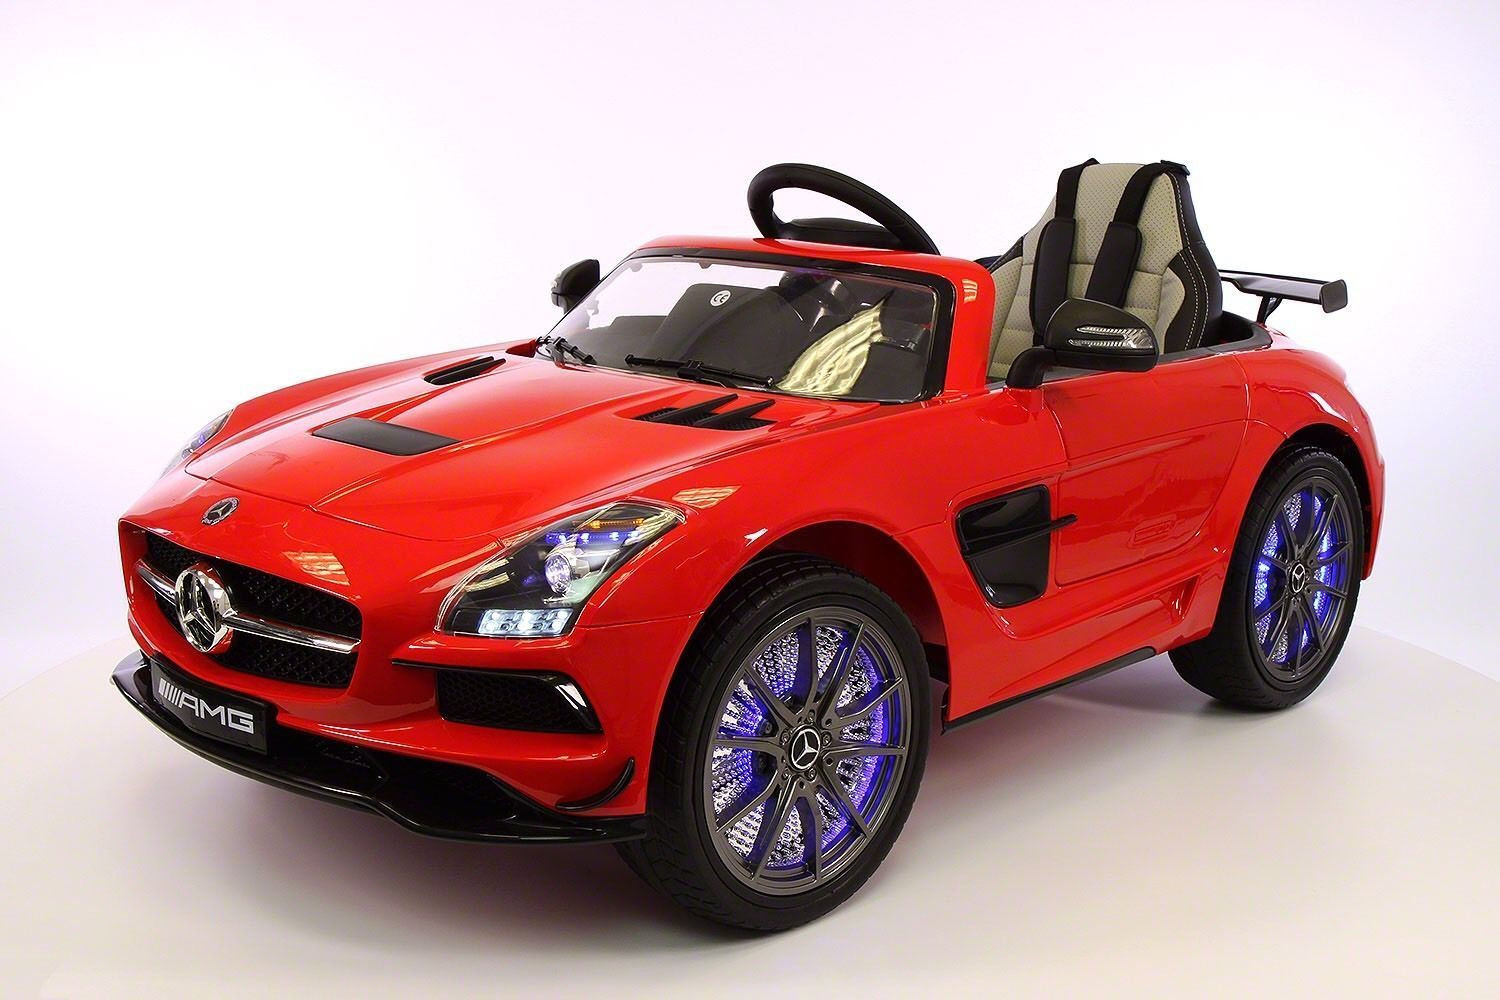 mercedes sls amg battery powered ride on car with mp3 mp4 and remote control red walmartcom